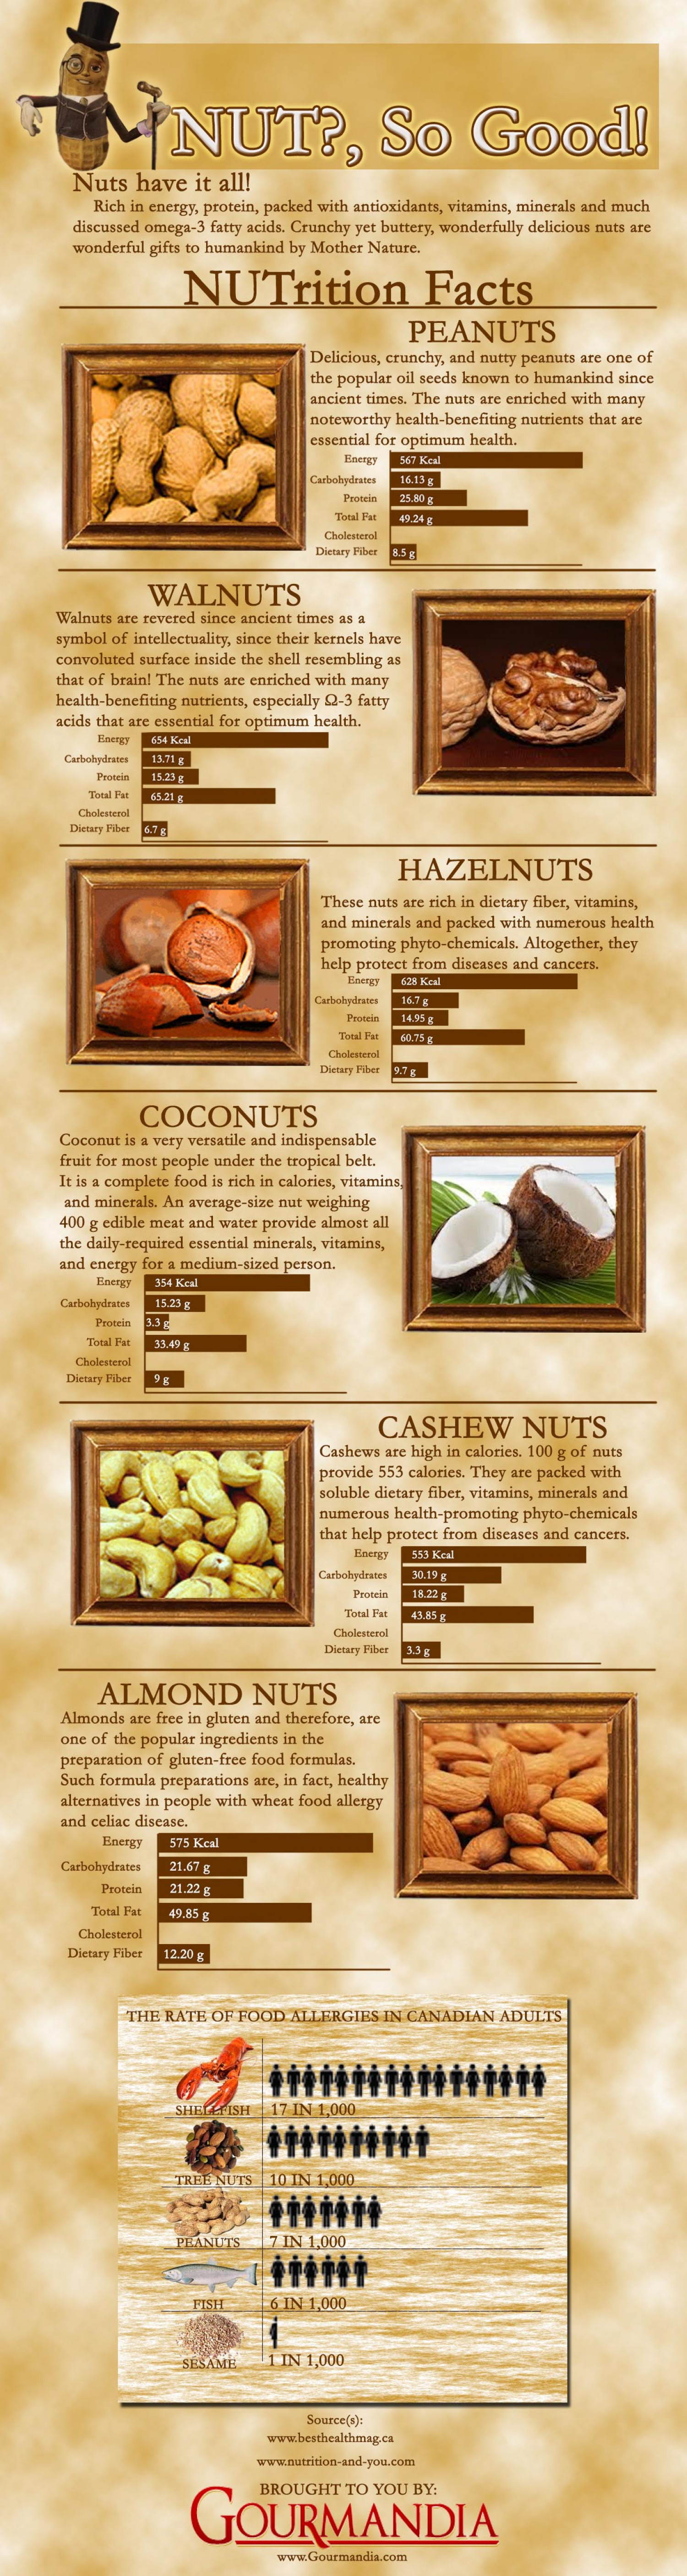 Nut?, So Good! Infographic